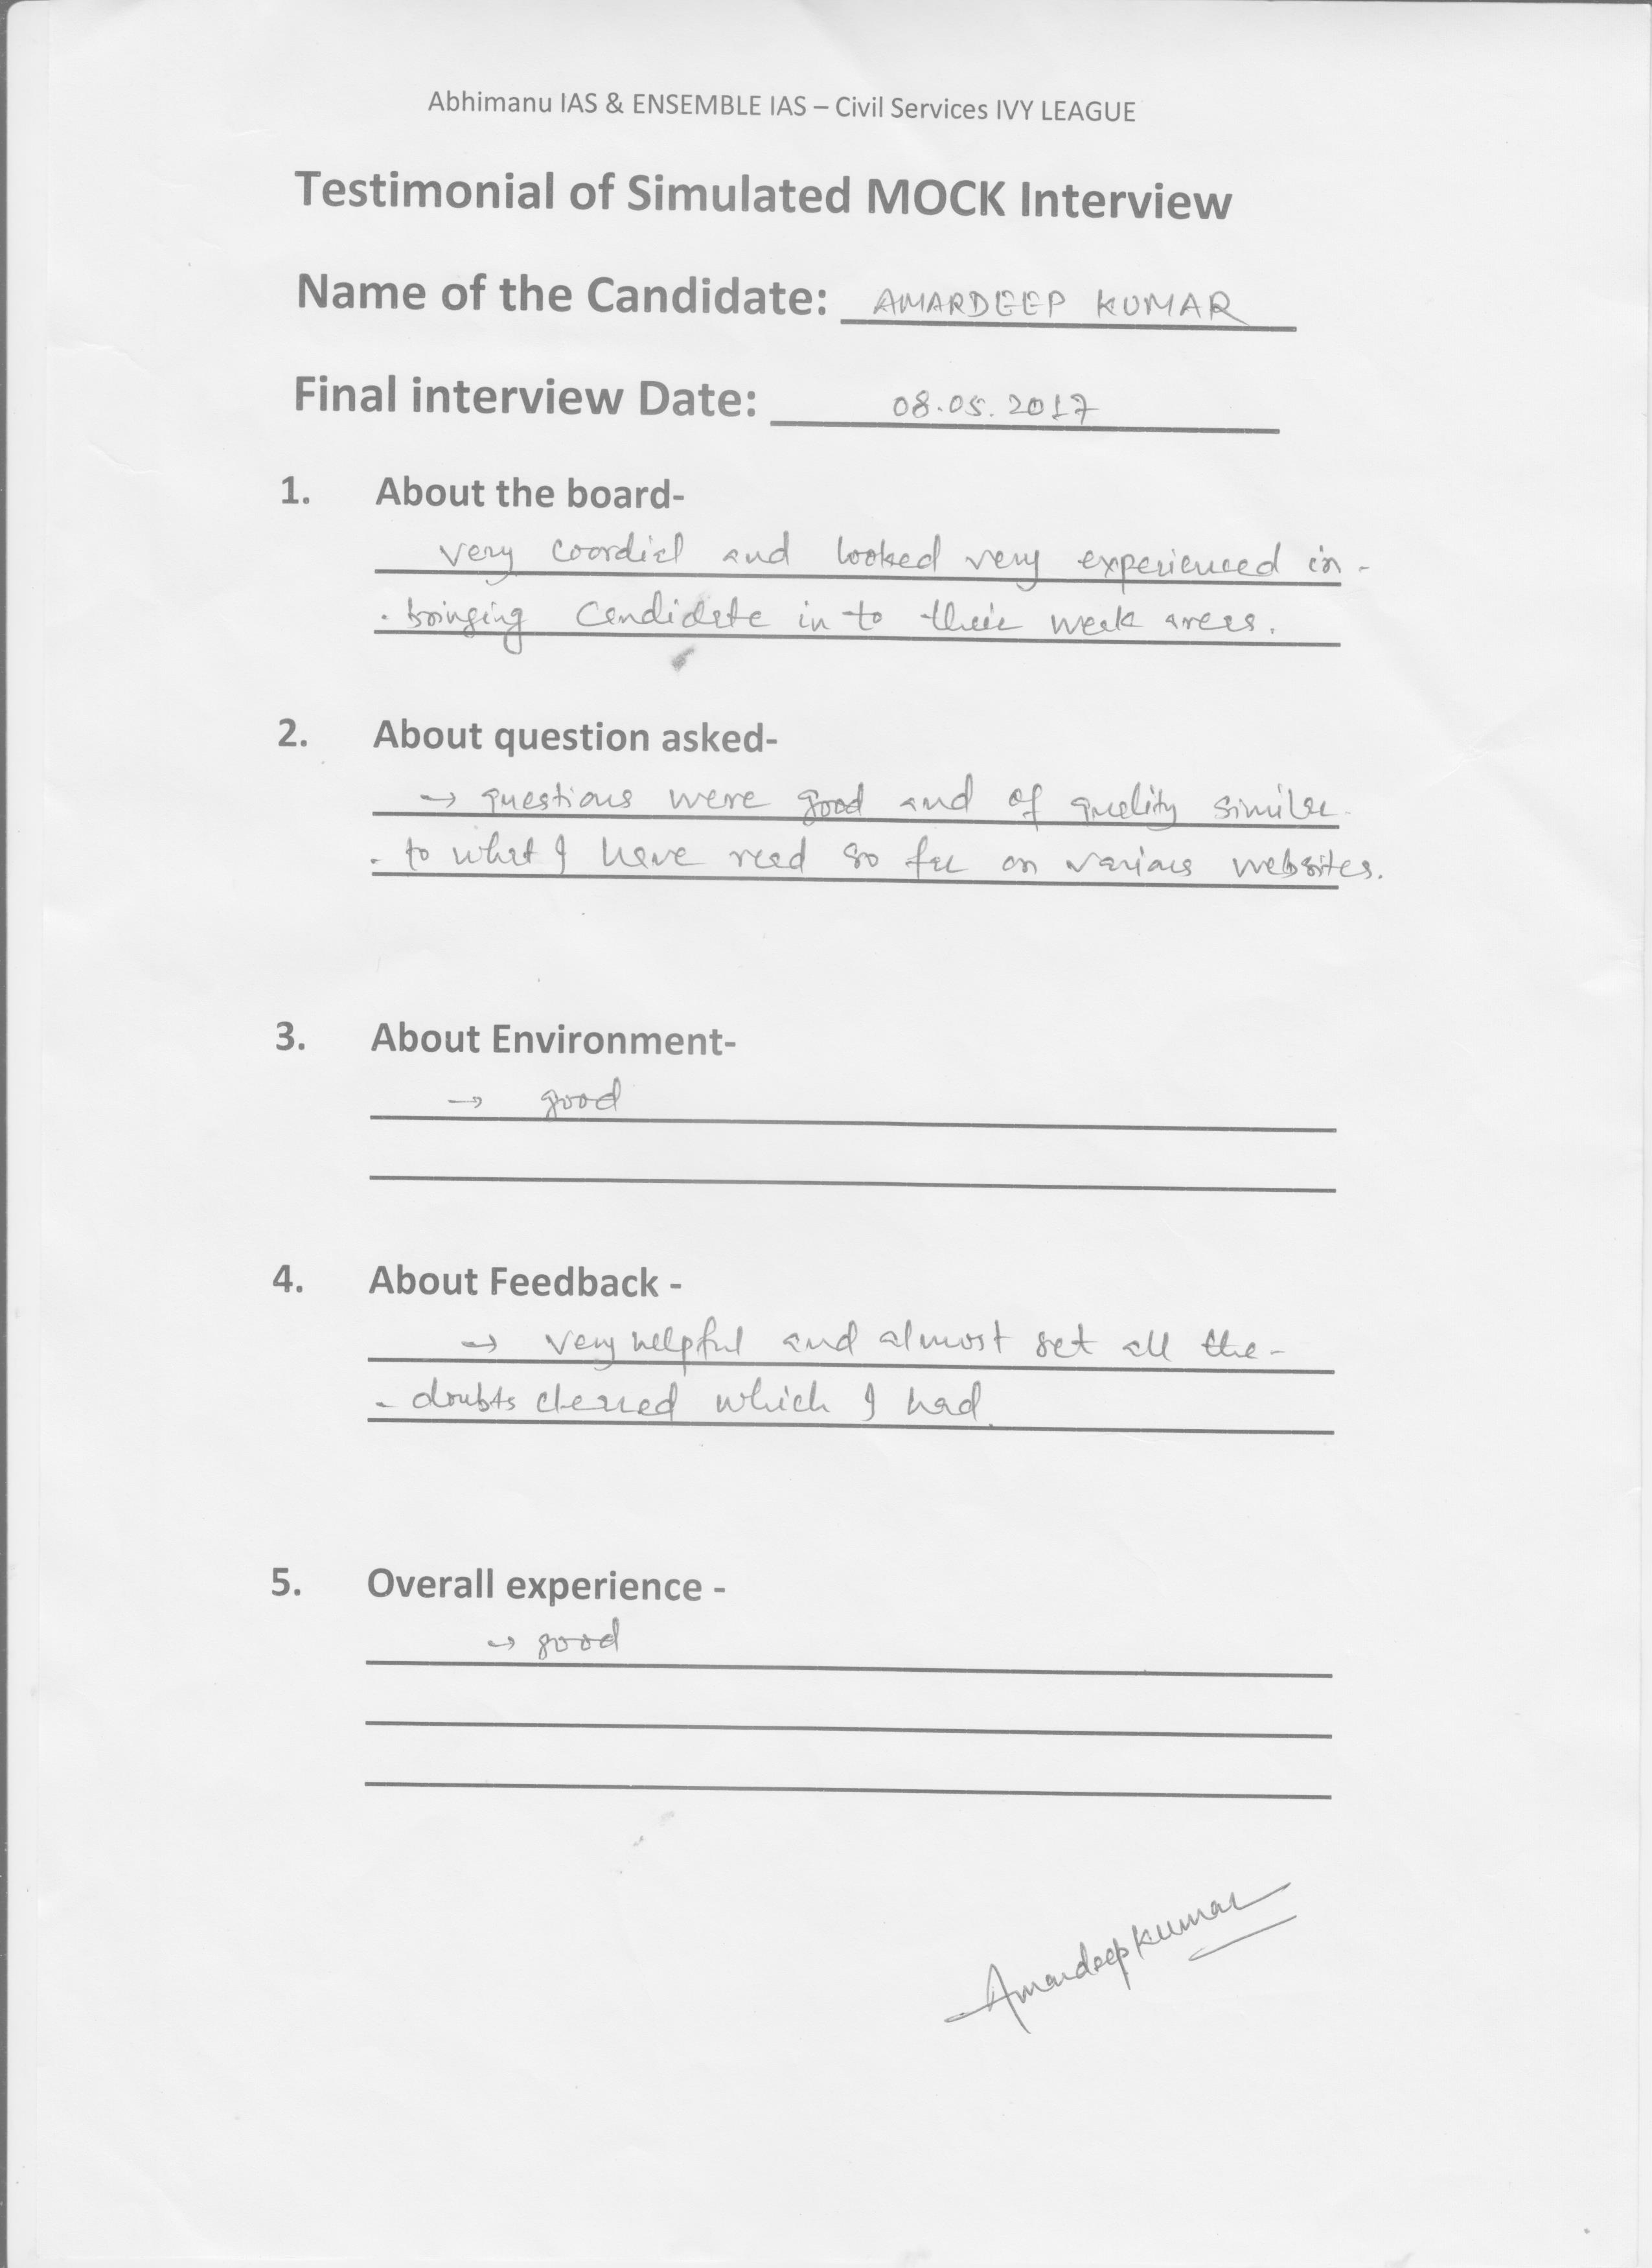 Interview Testimonial By- Amardeep